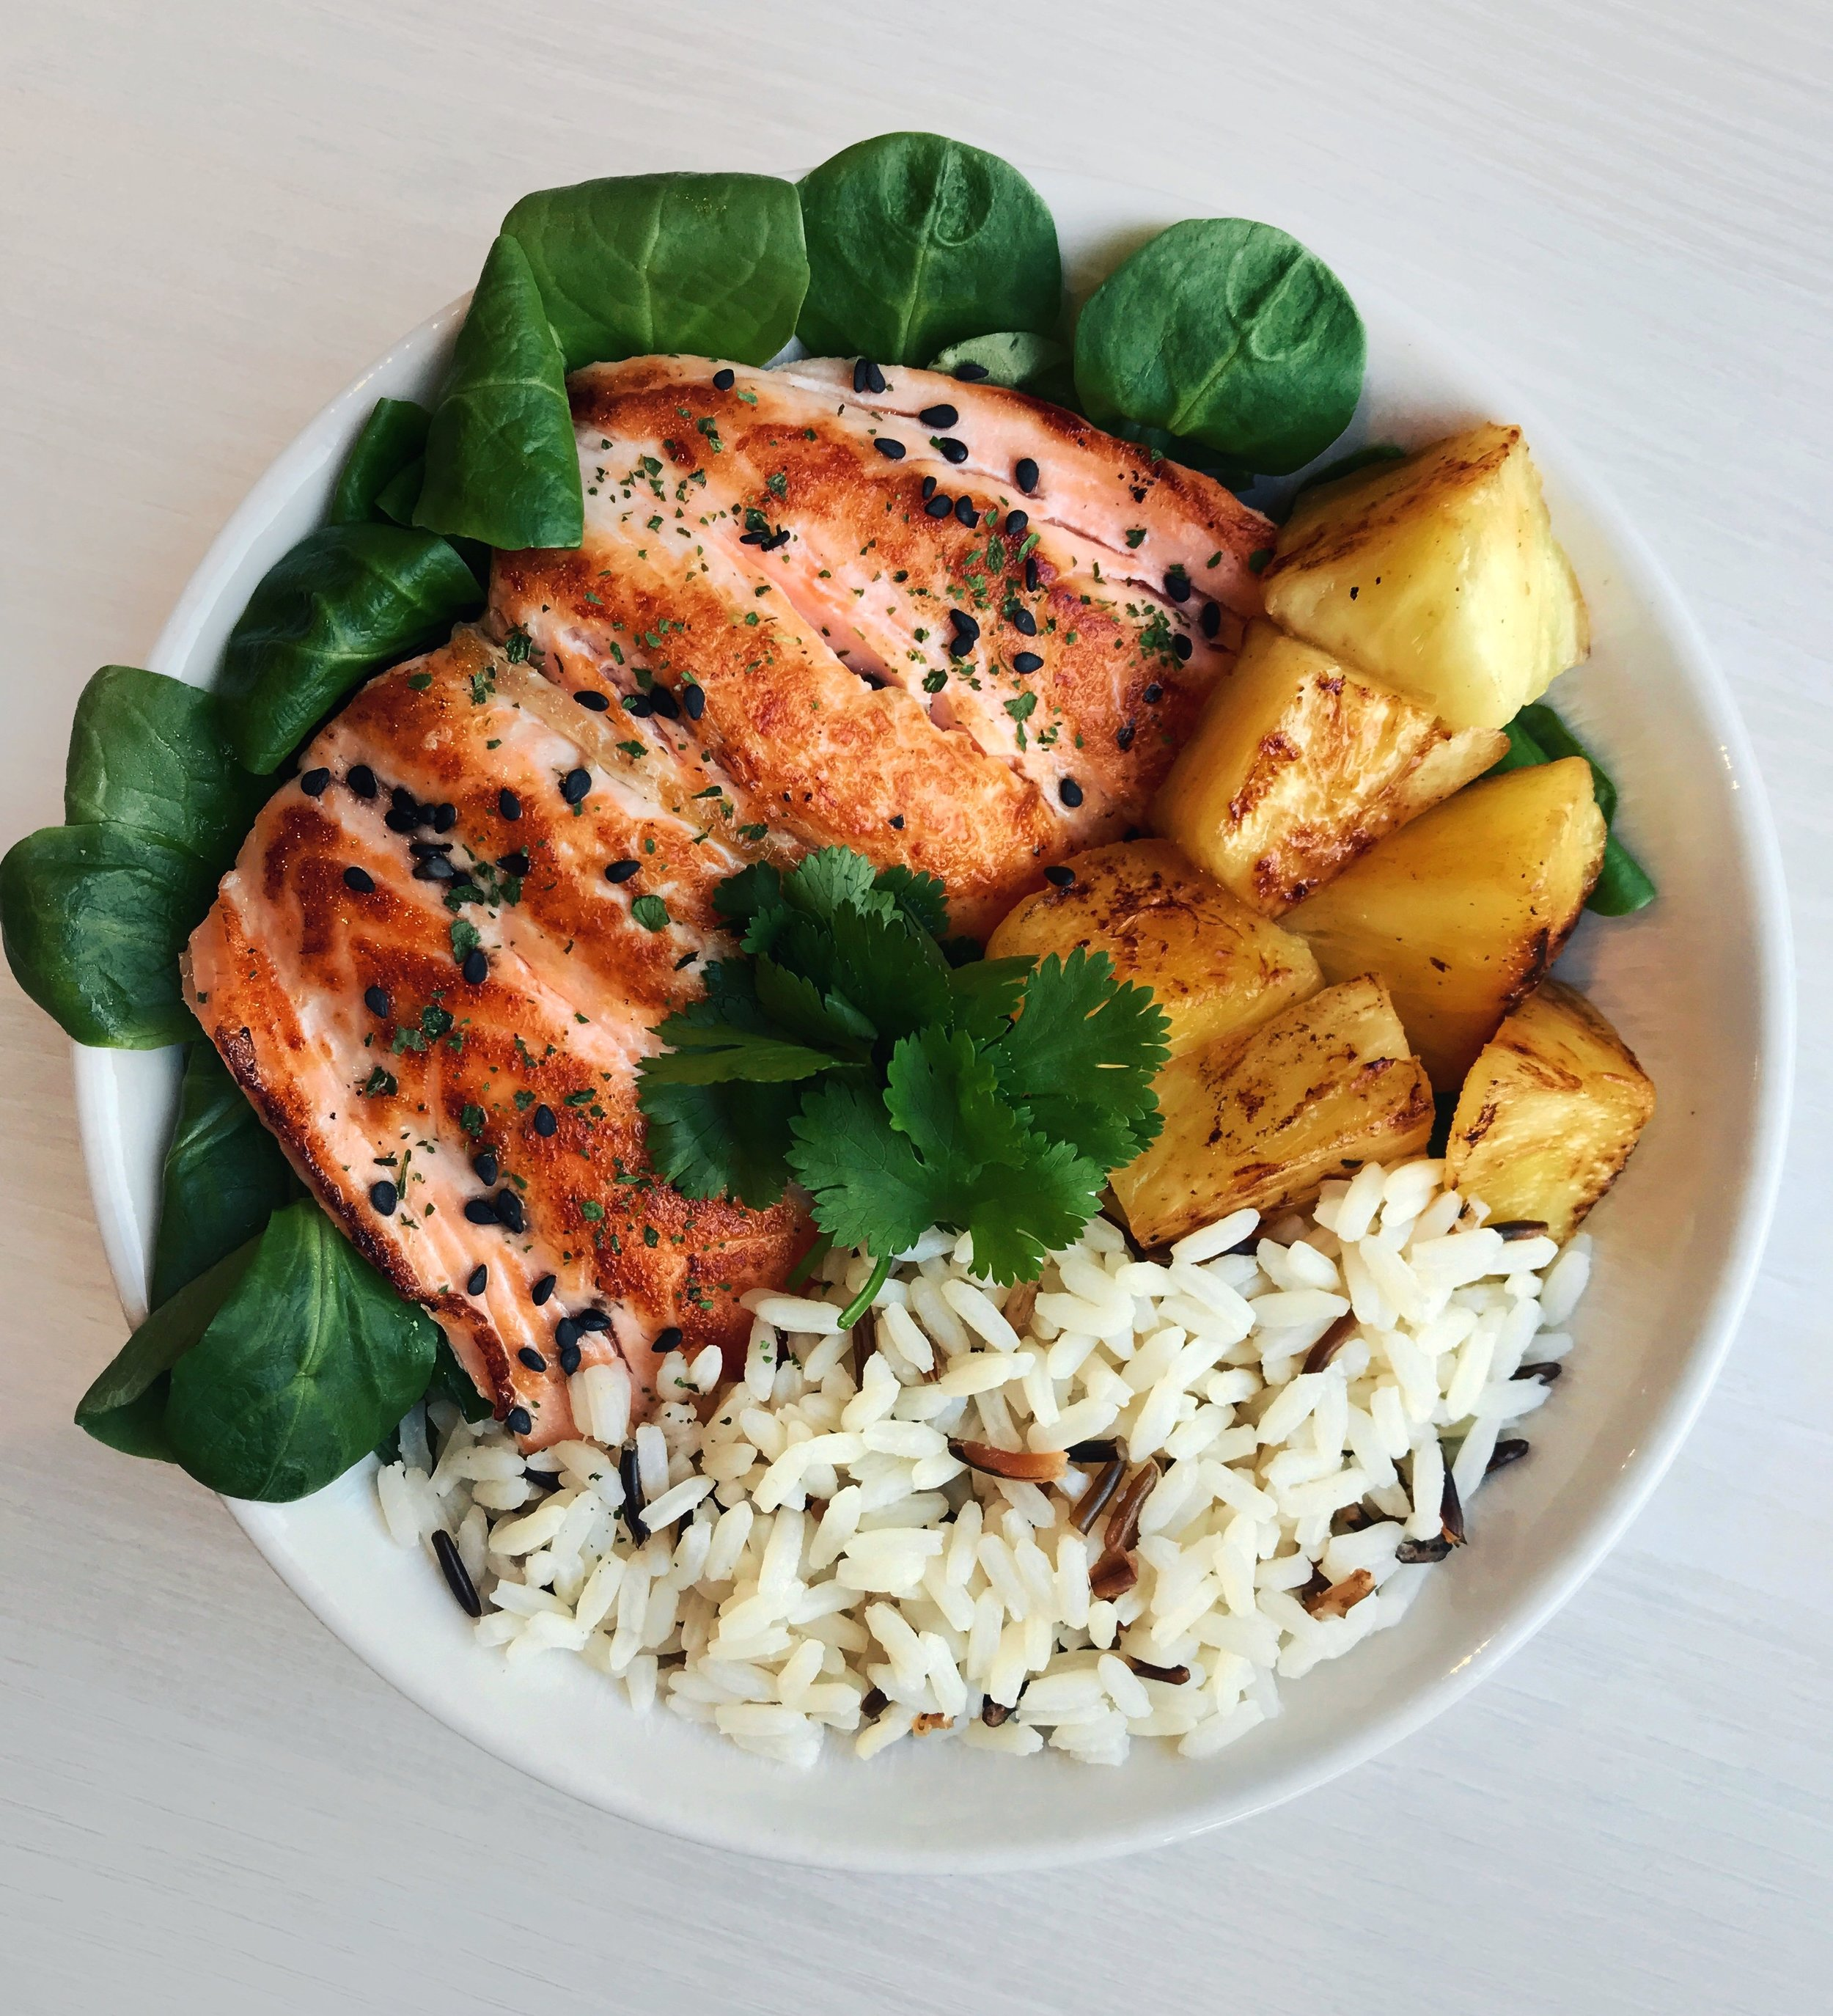 Sweet & Savory Salmon Bowl - Grilled salmon (cooked with @terradelyssa_frolive oil in a pan for a few minutes on each side) + white and black rice + sauteed pineapple (in a pan with coconut/olive oil) +@florette_francesalad leaves + cilantro +@naturalia_magasins_biosesame seeds